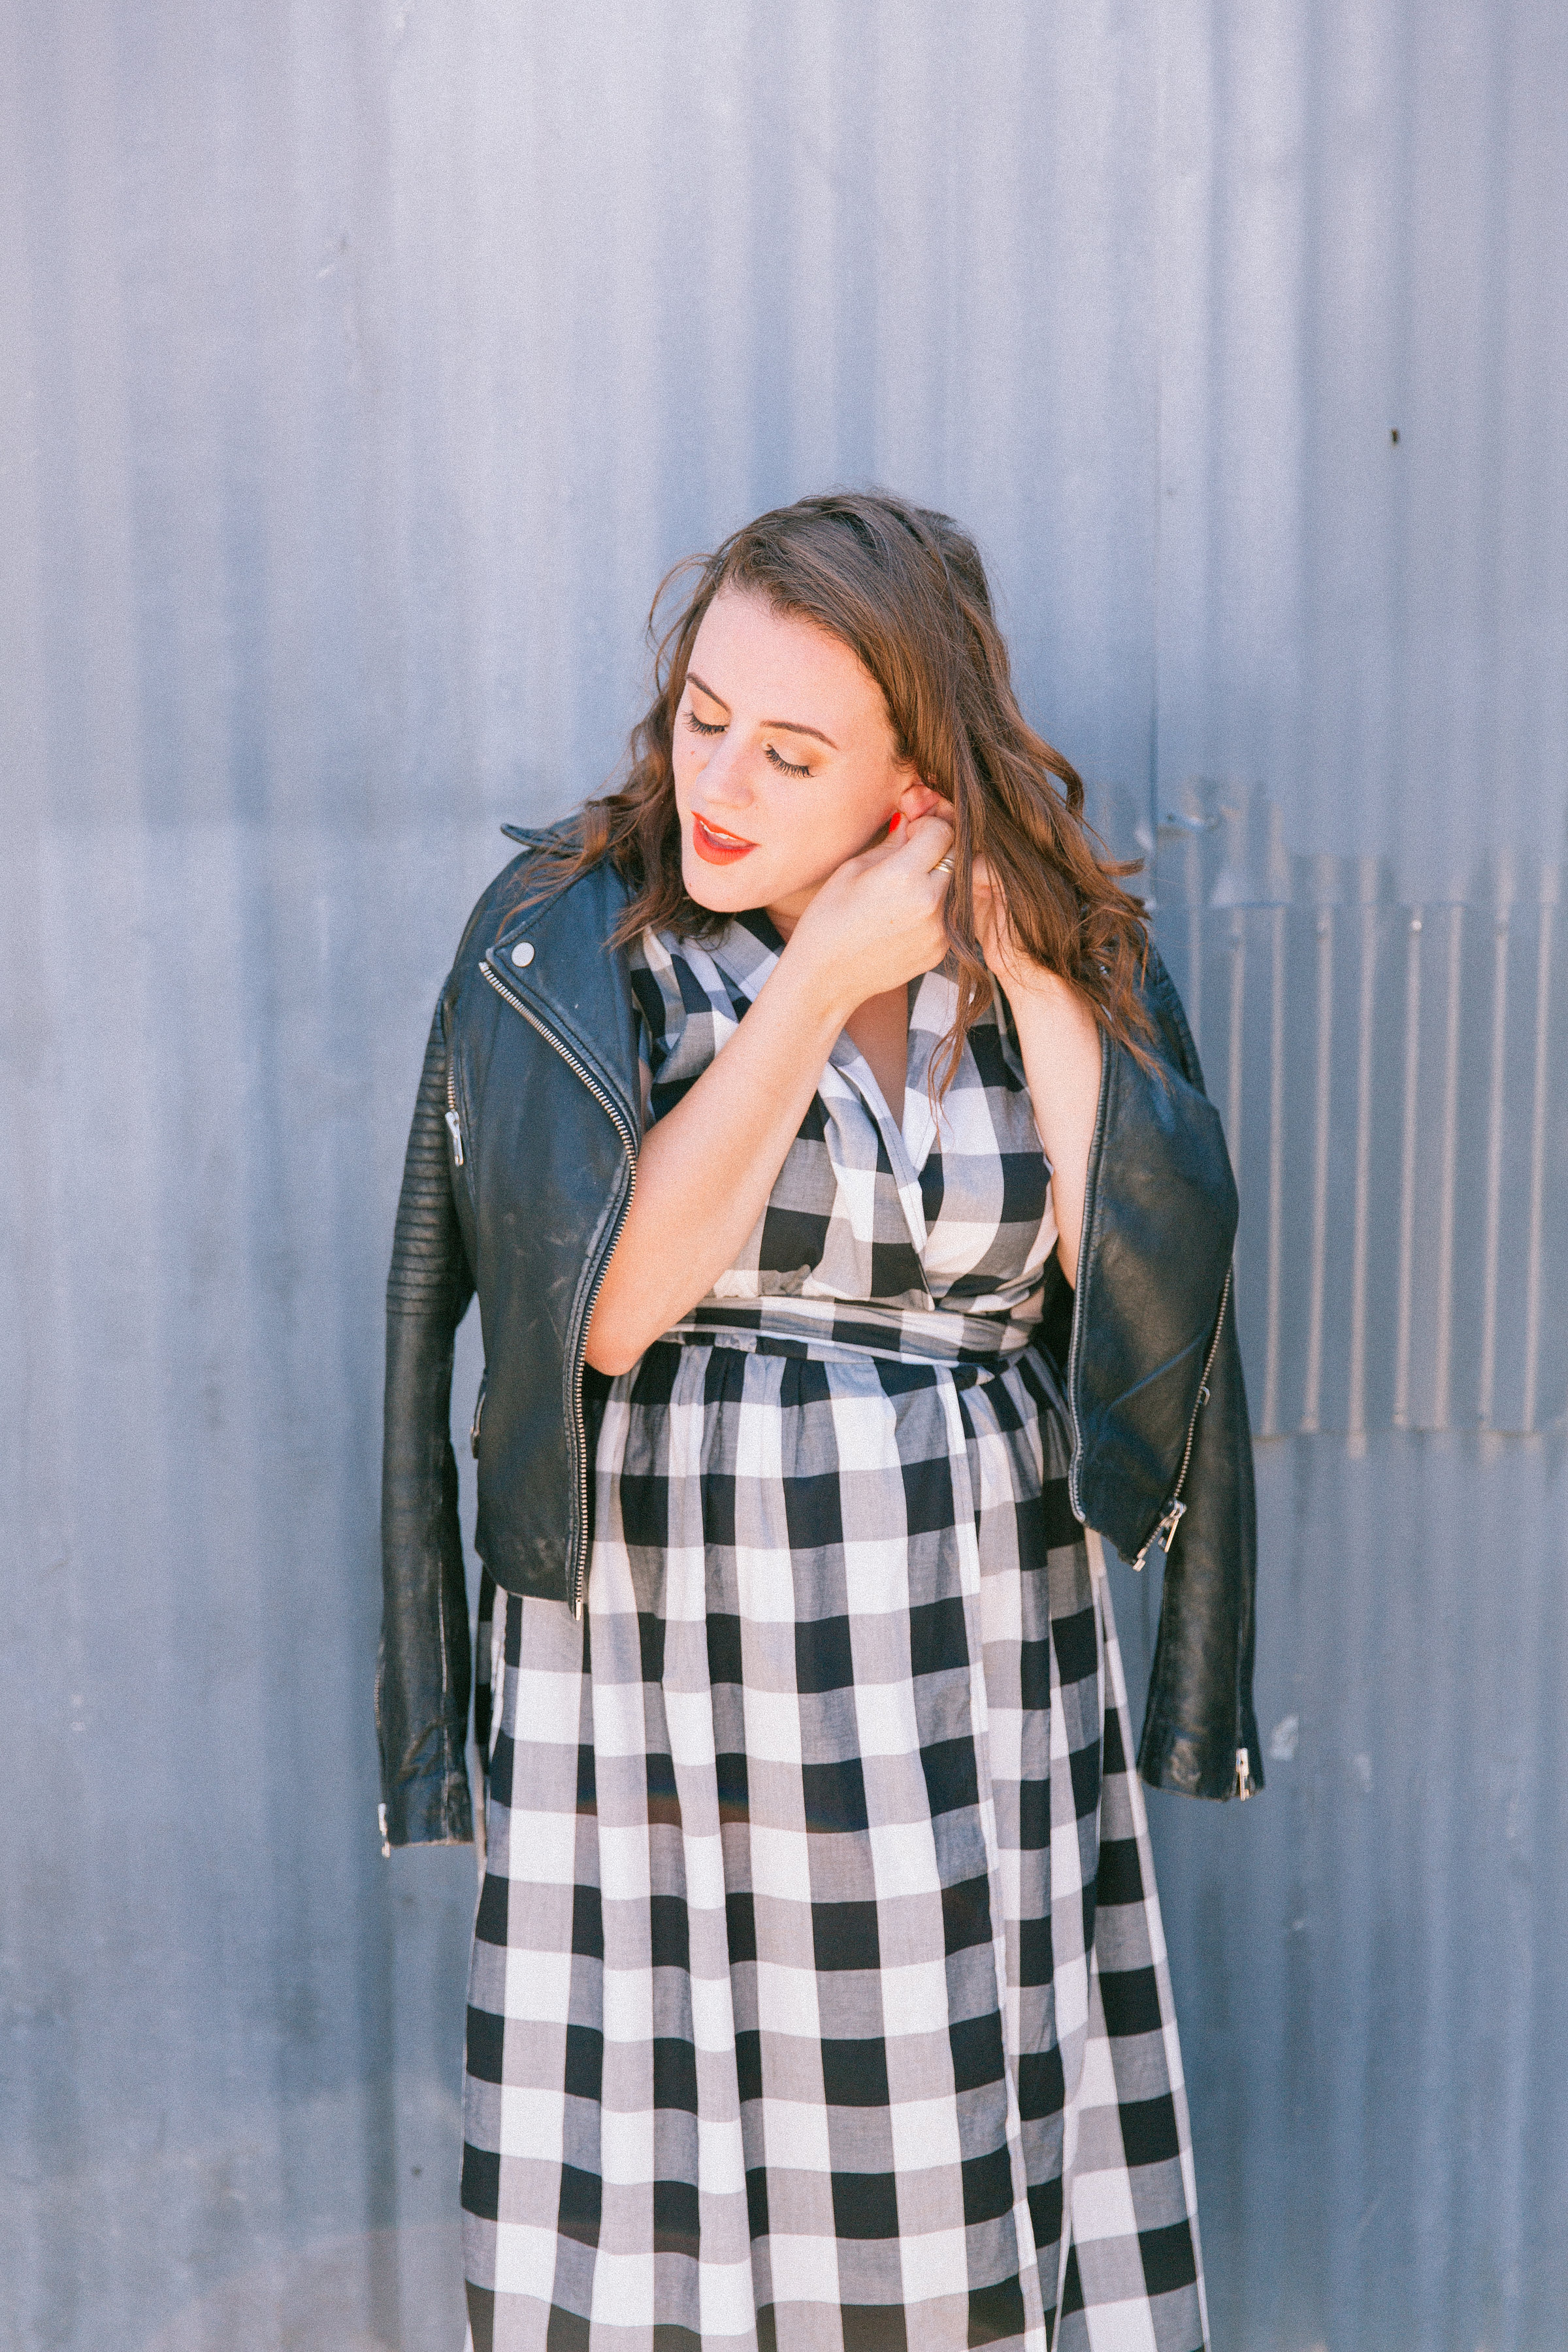 It's all about the versatile statement pieces! - Let's chat about Fall pieces that will work in so many ways!